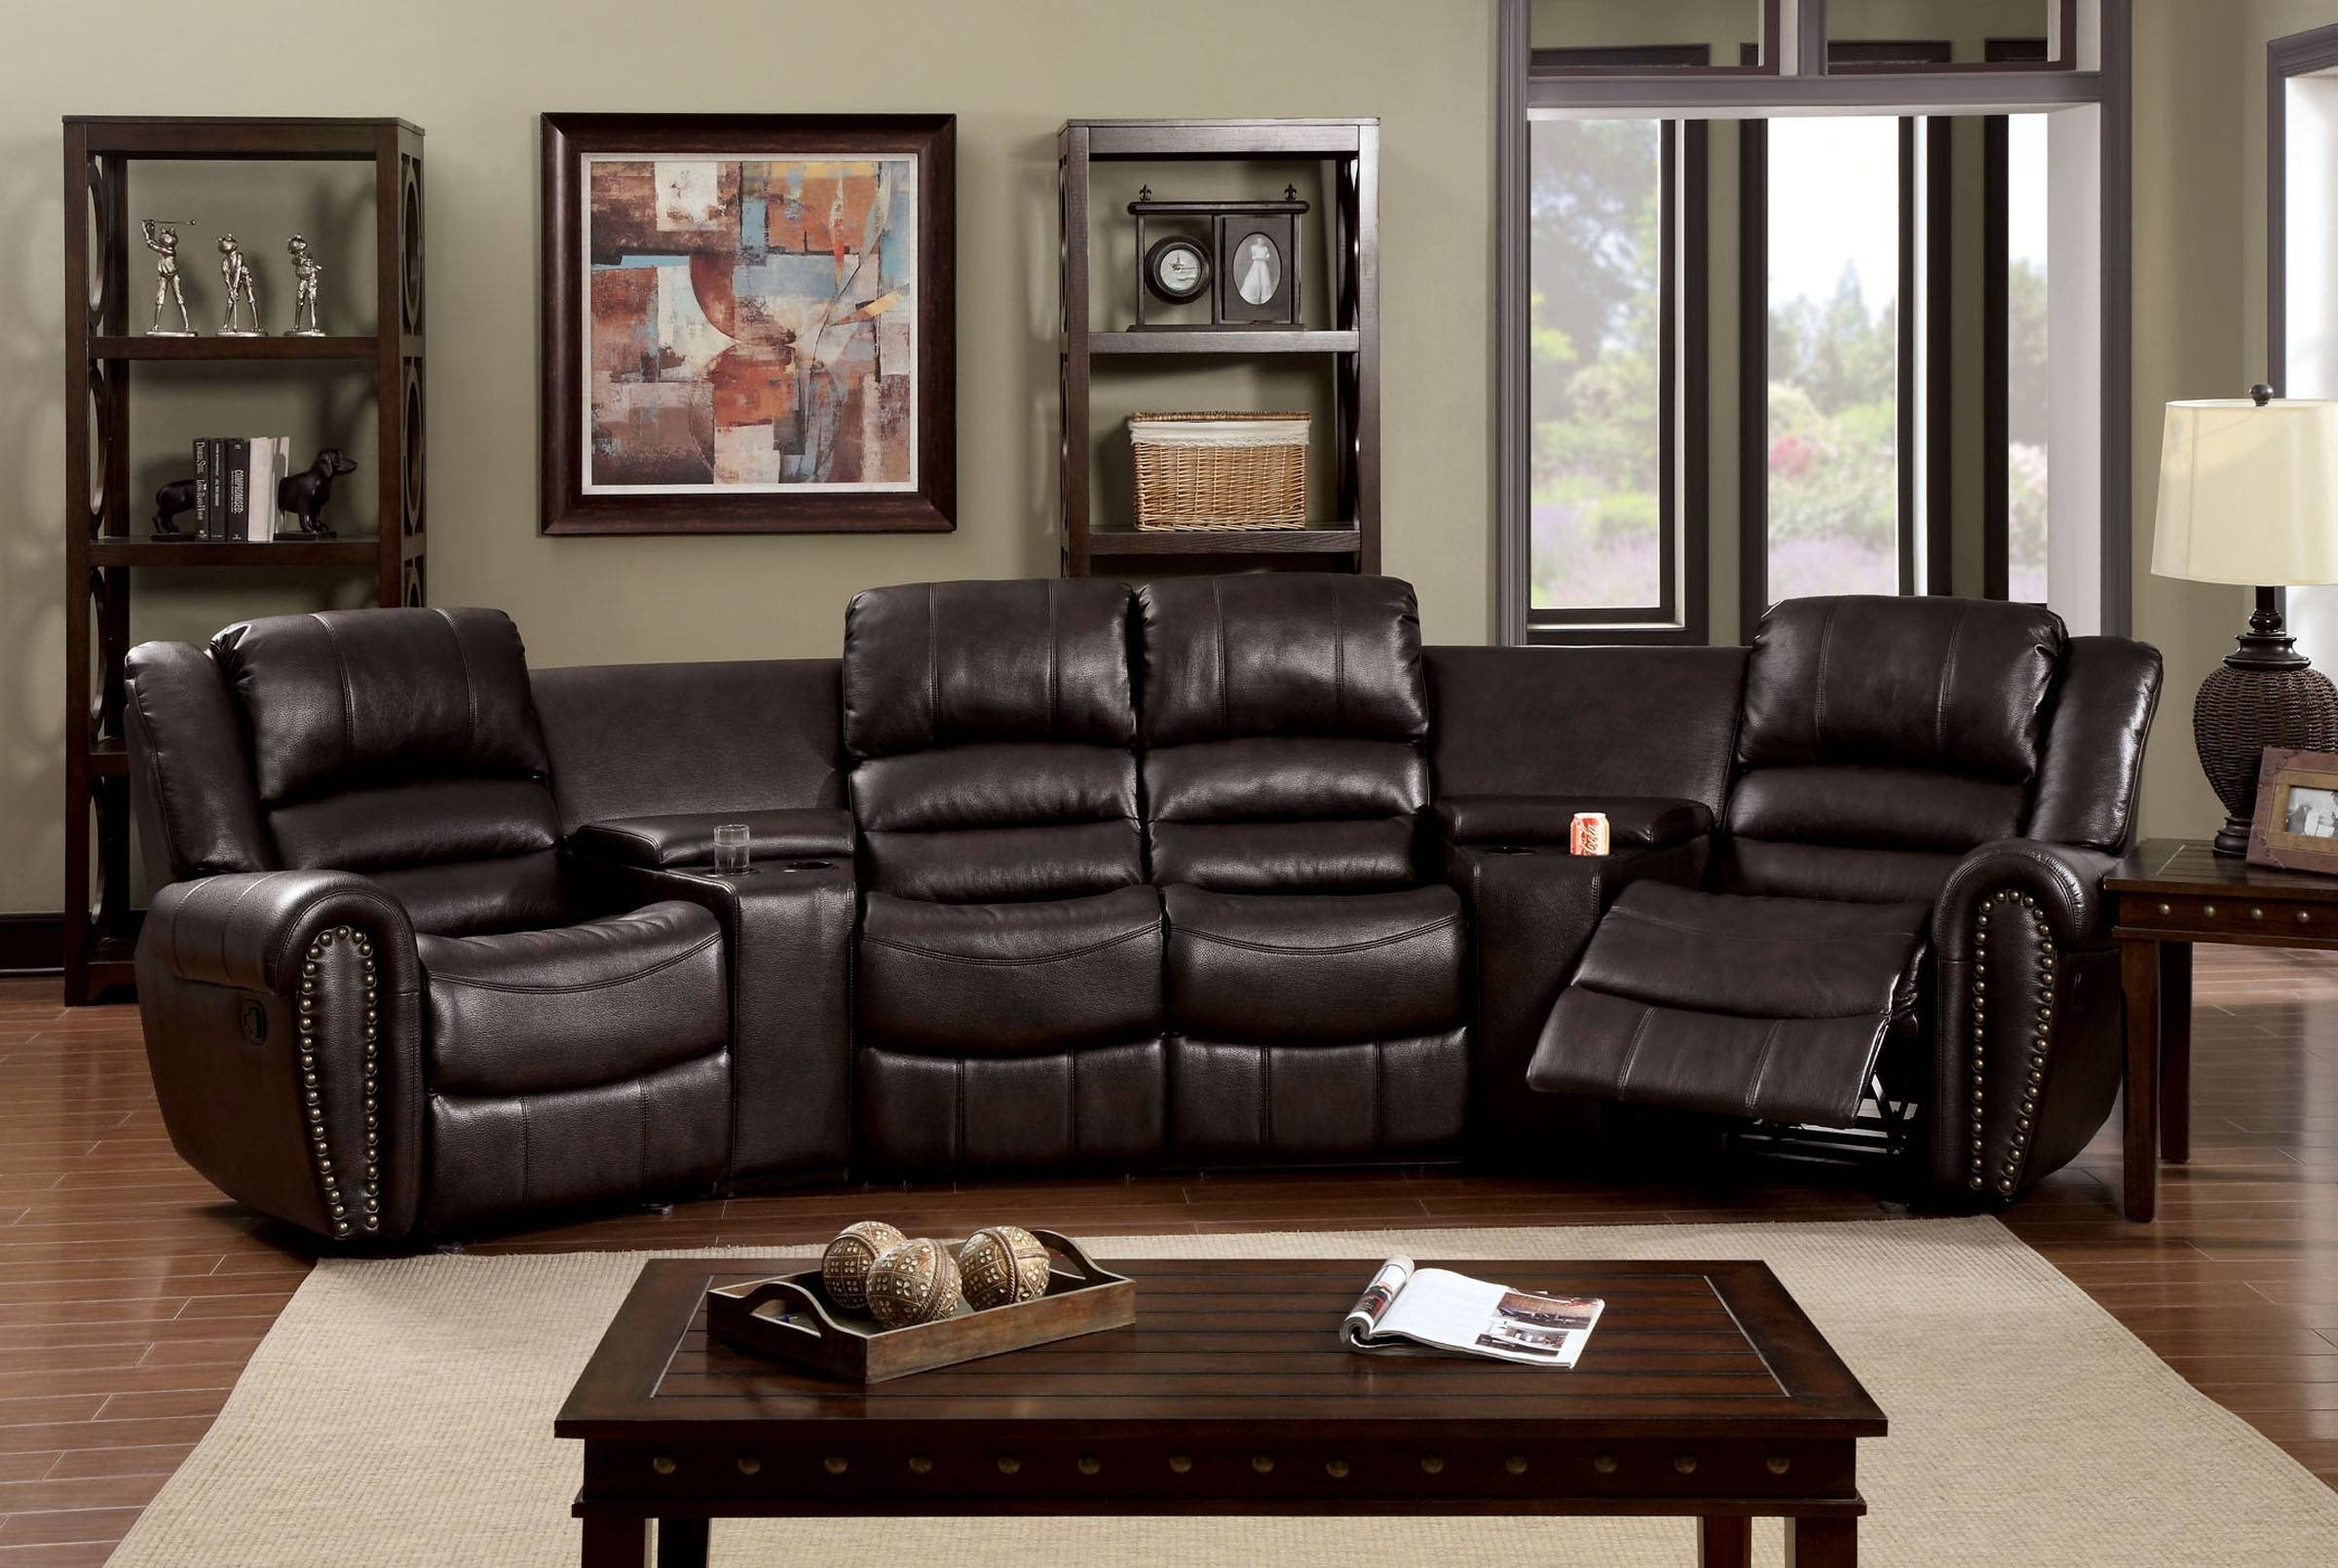 Cool Home Theater Sectional Sofas 11 With Additional Sectional in Theatre Sectional Sofas (Image 7 : theater sectional sofas - Sectionals, Sofas & Couches